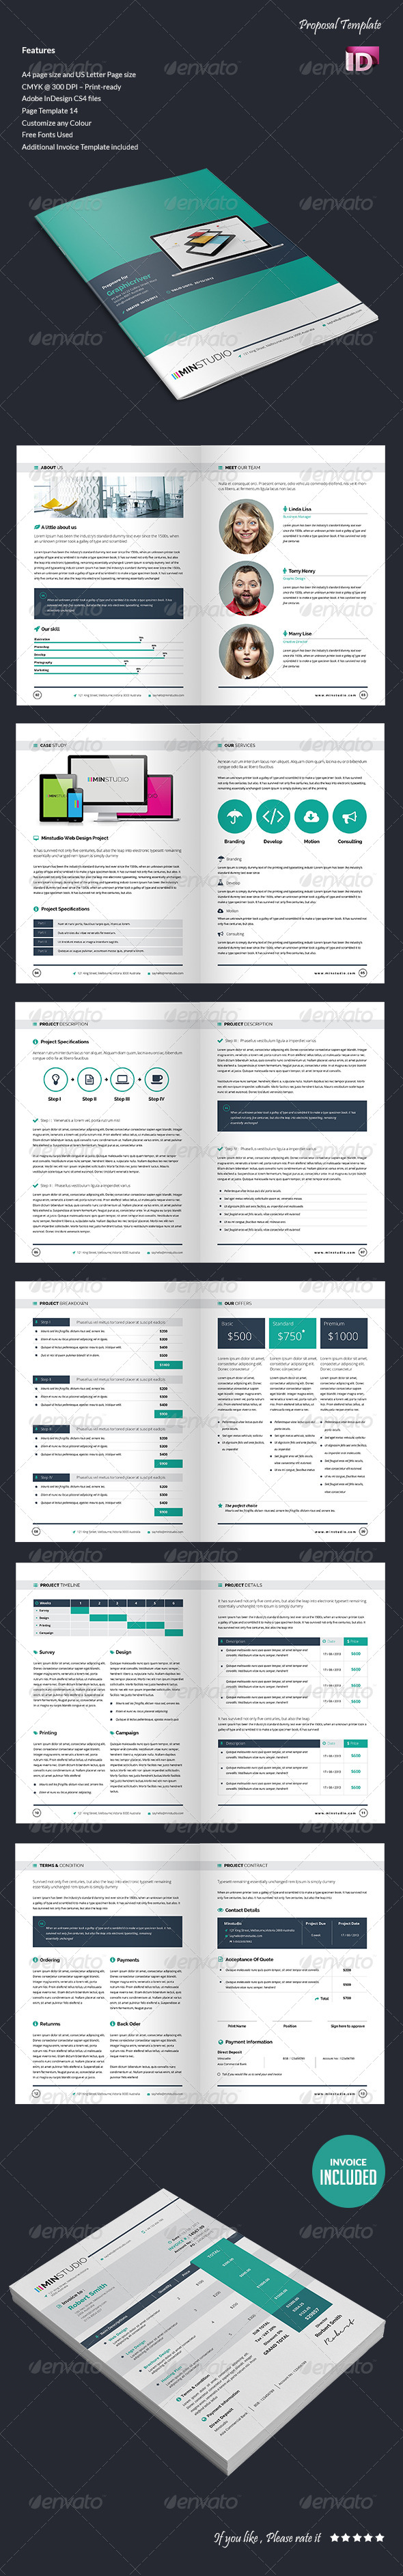 GraphicRiver Proposal Template 5412801